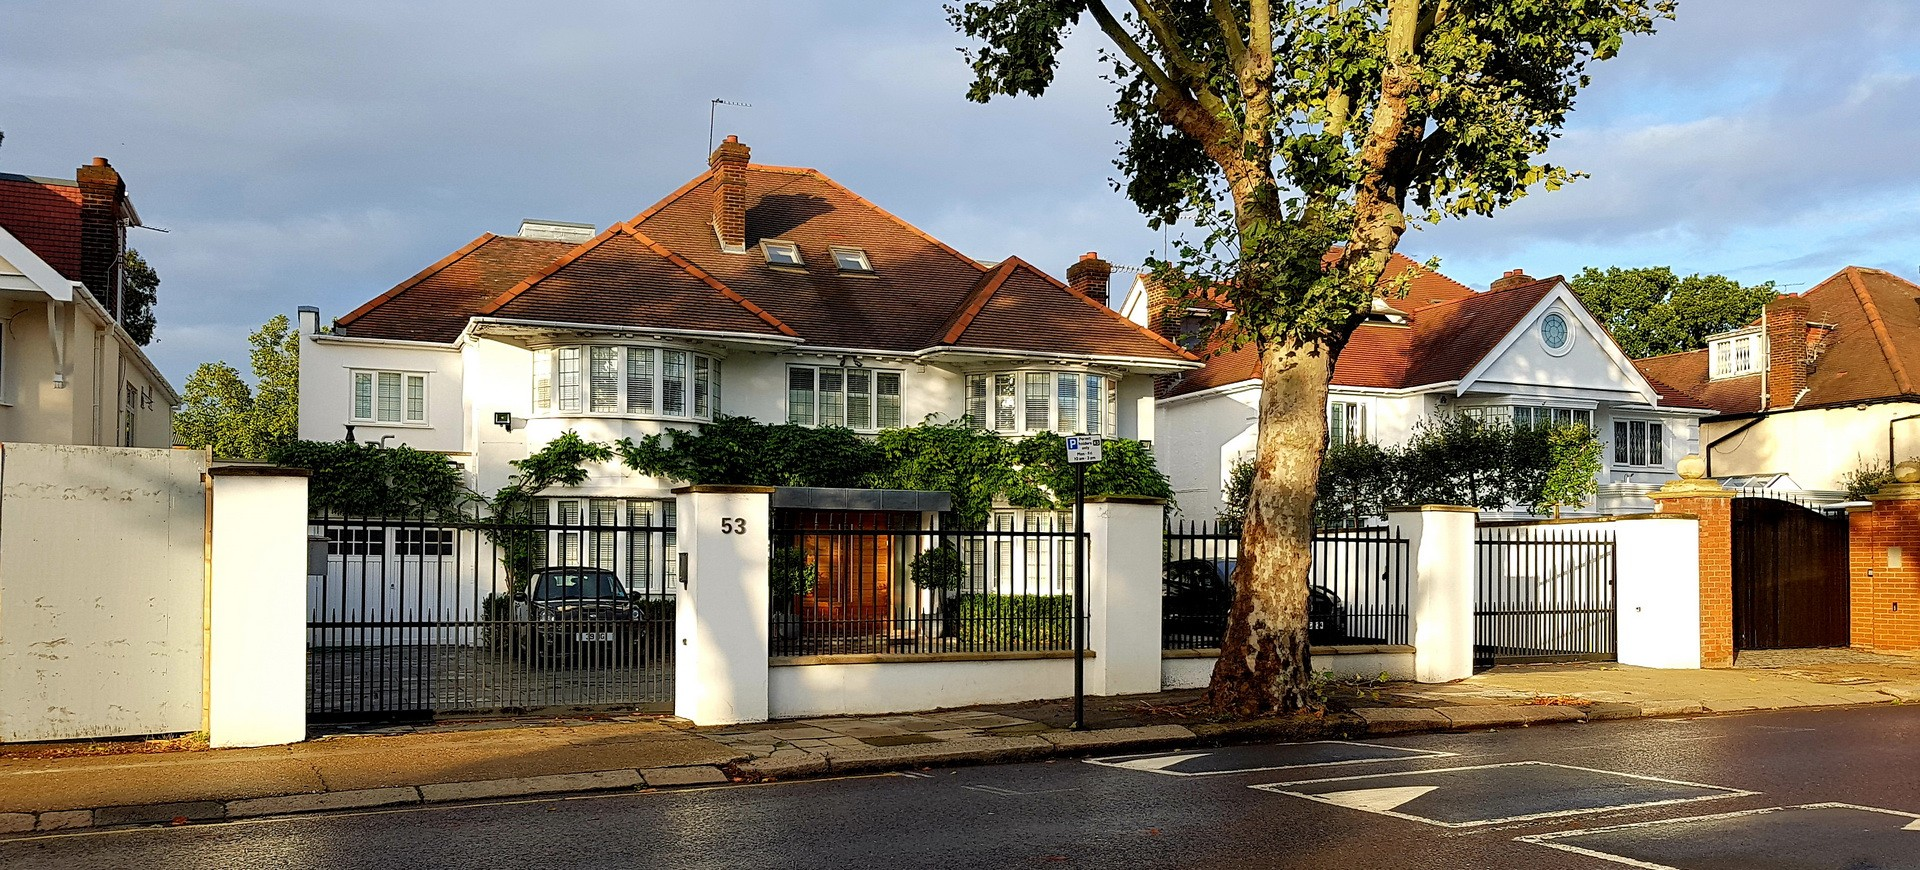 Royaume Unis Londres Brondesbury by AB